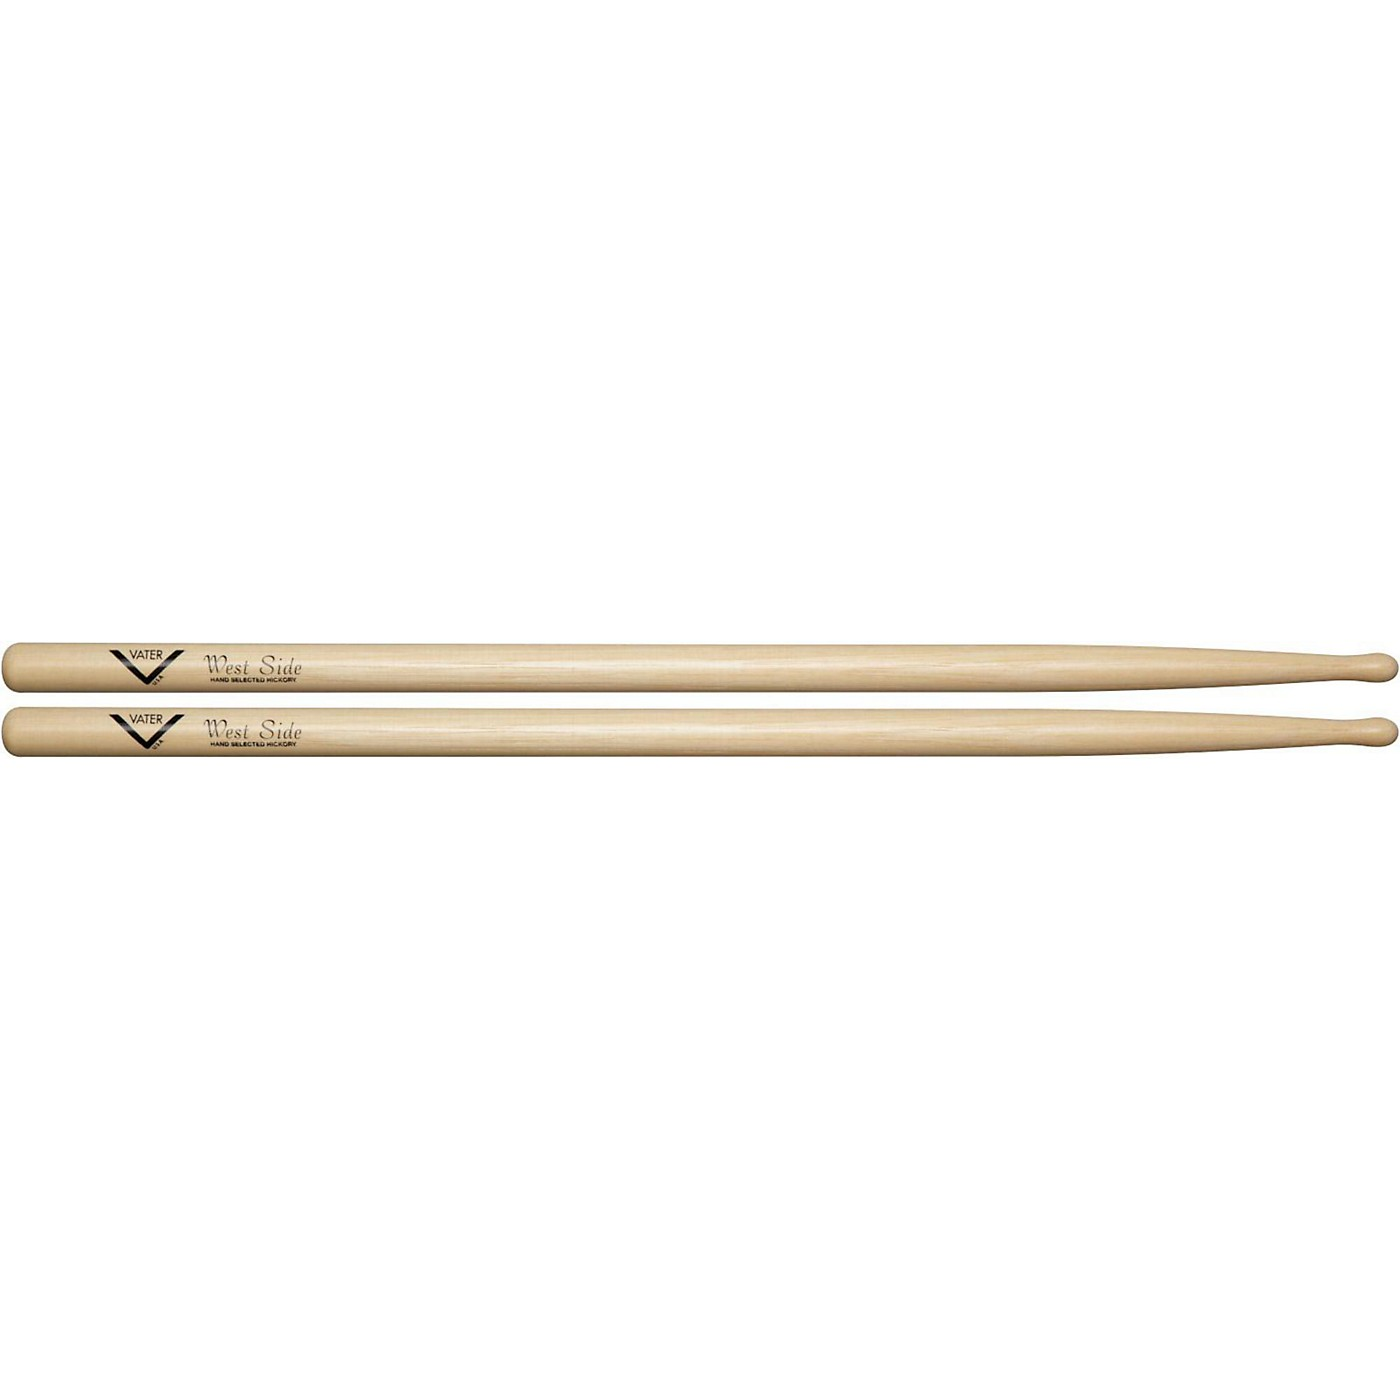 Vater American Hickory West Side Drumsticks thumbnail